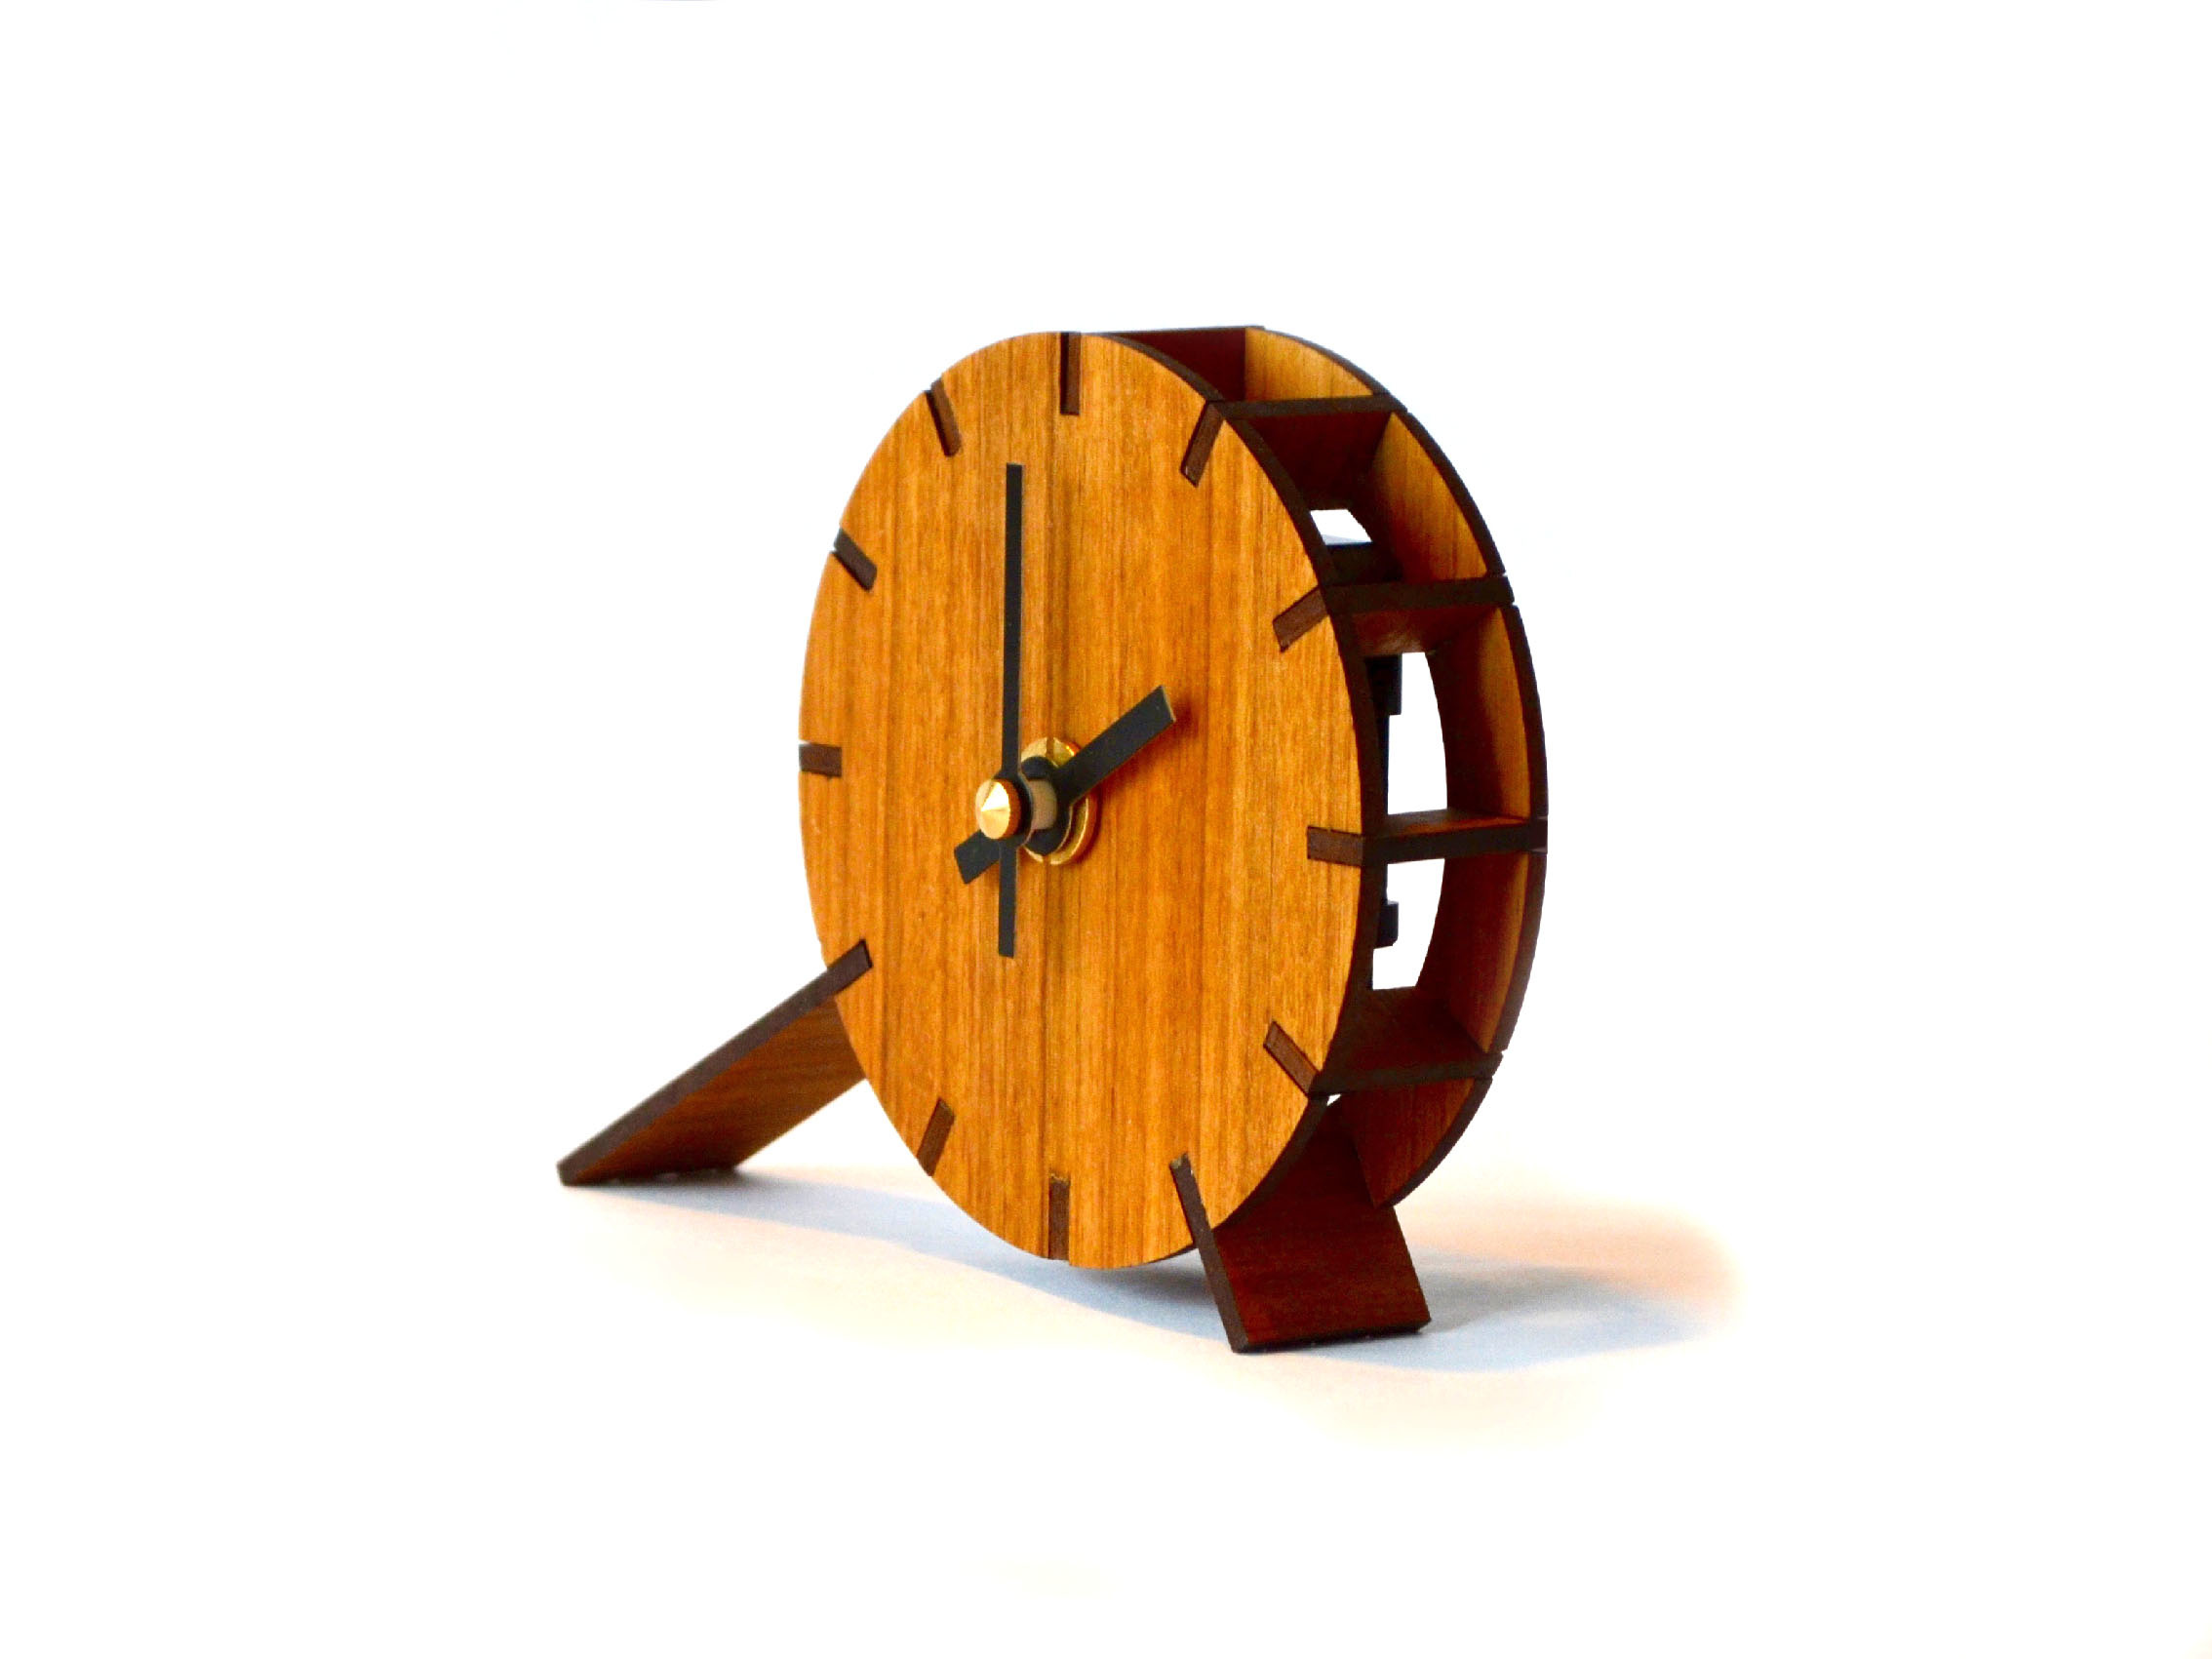 Table-Toc clock - Designed for batch production.